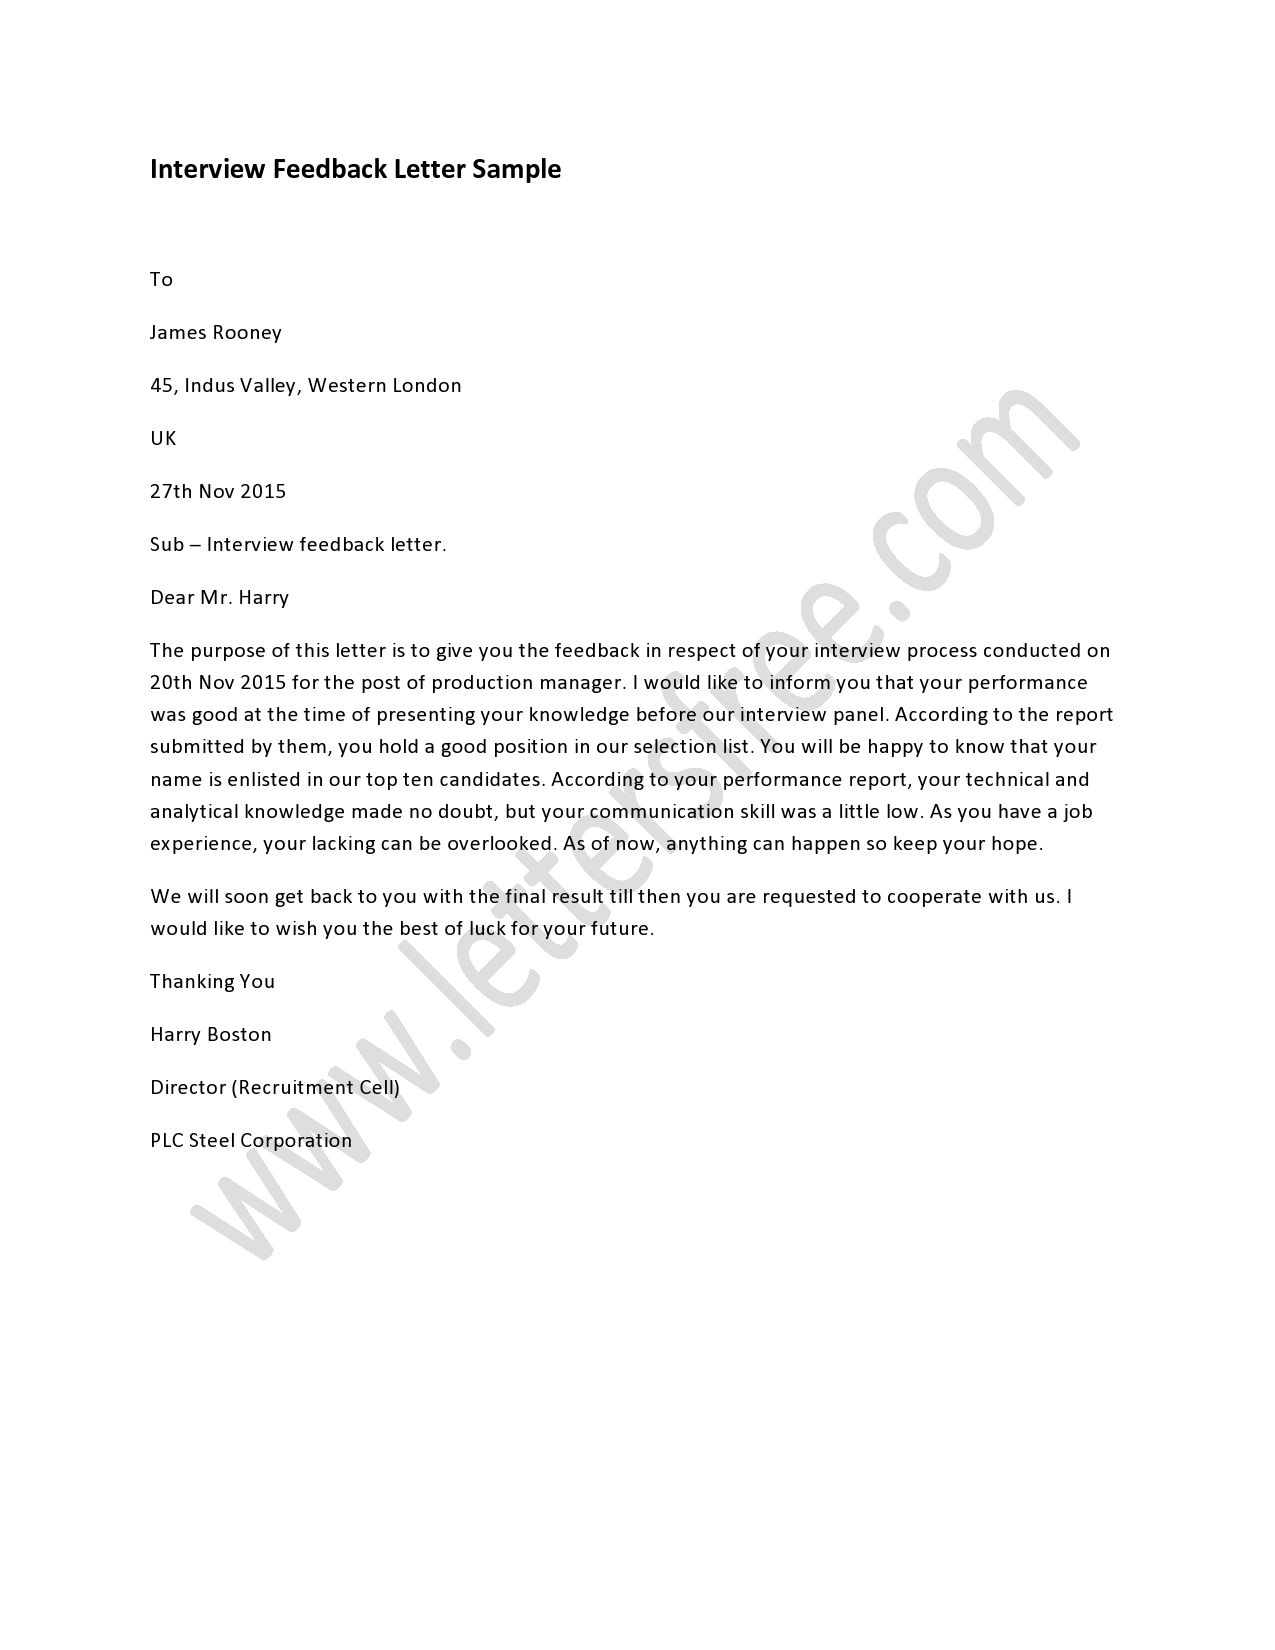 Sample Interview Feedback Letter How To Write A Interview